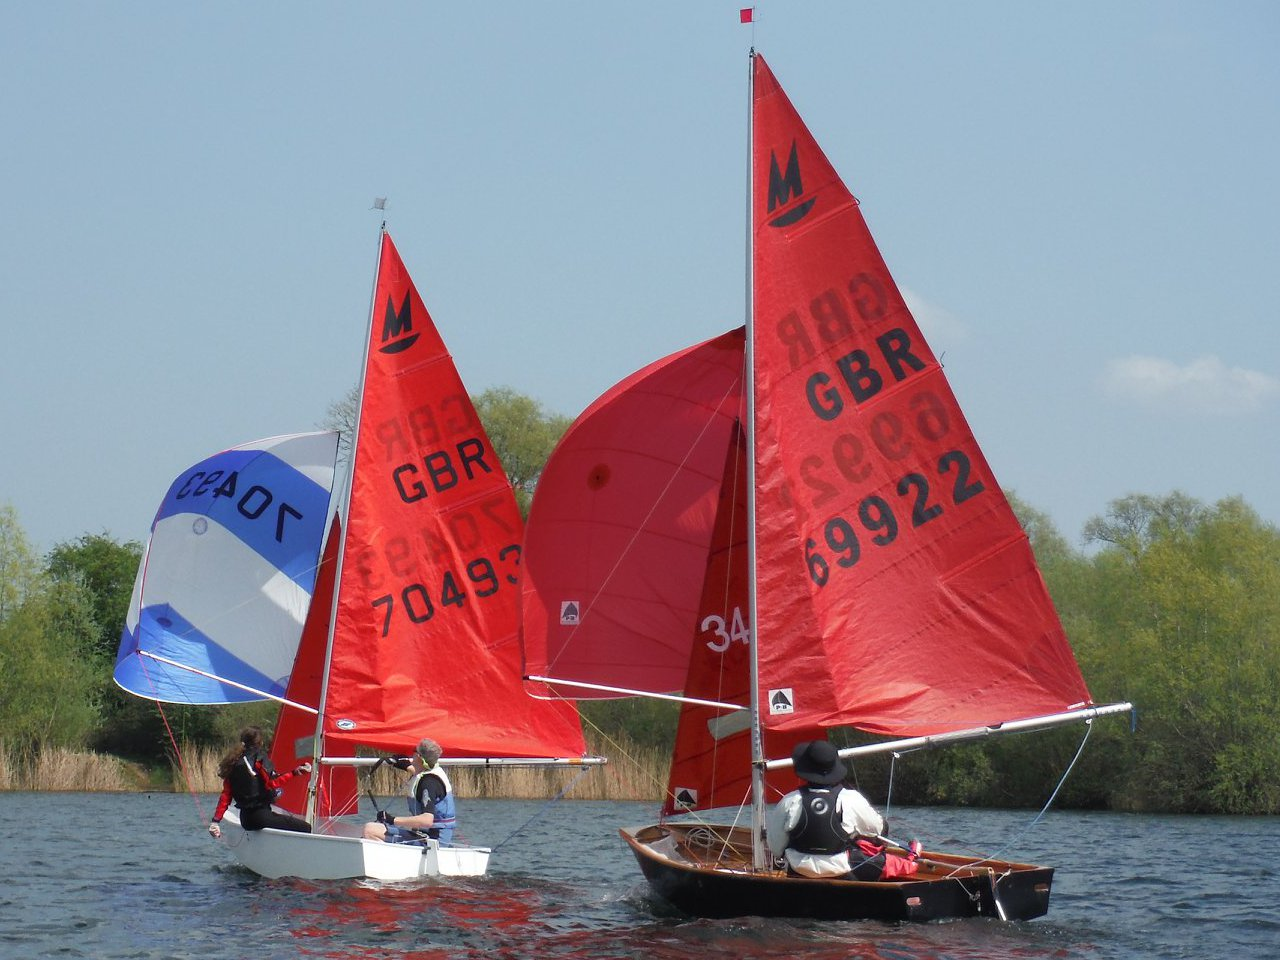 Two Mirror dinghies racing downwind on a lake with spinnakers set